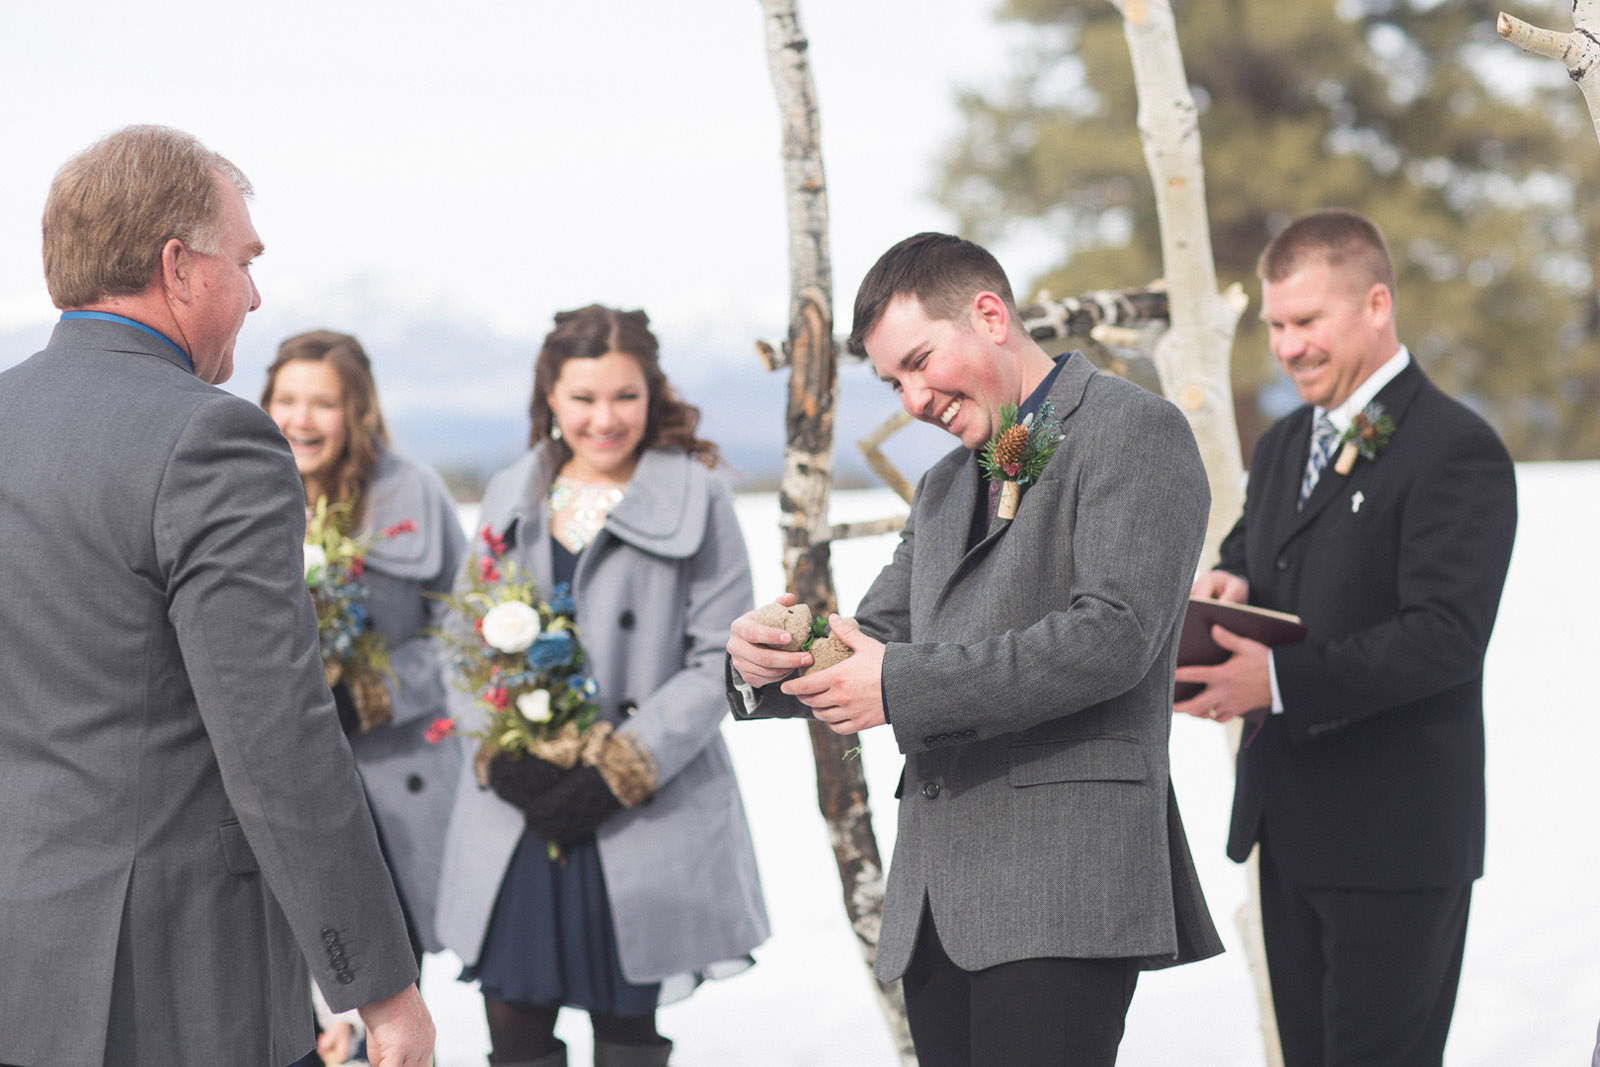 102-wedding-ceremony-in-pagosa-springs-wedding-photographer-snow-winter-wedding